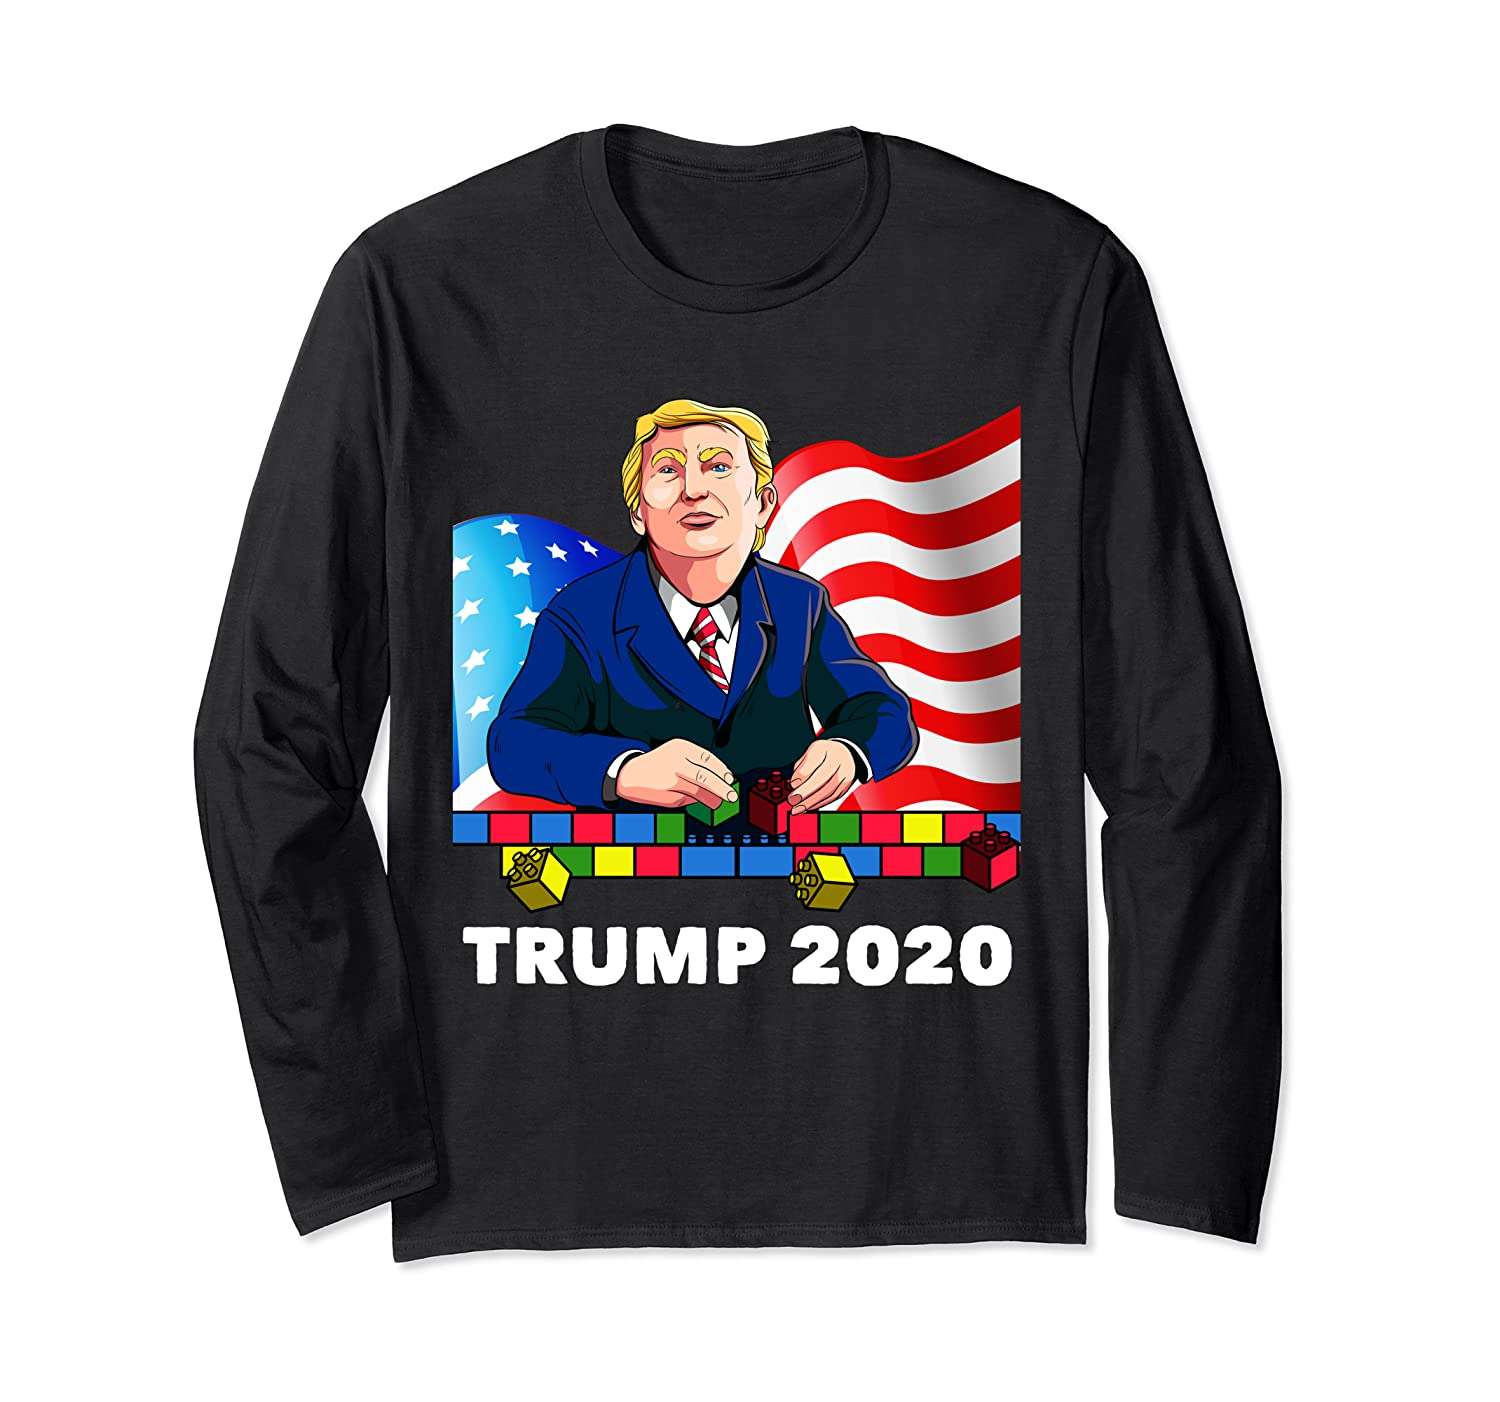 Trump 2020 Elections Build The Wall Long Sleeve T-Shirt